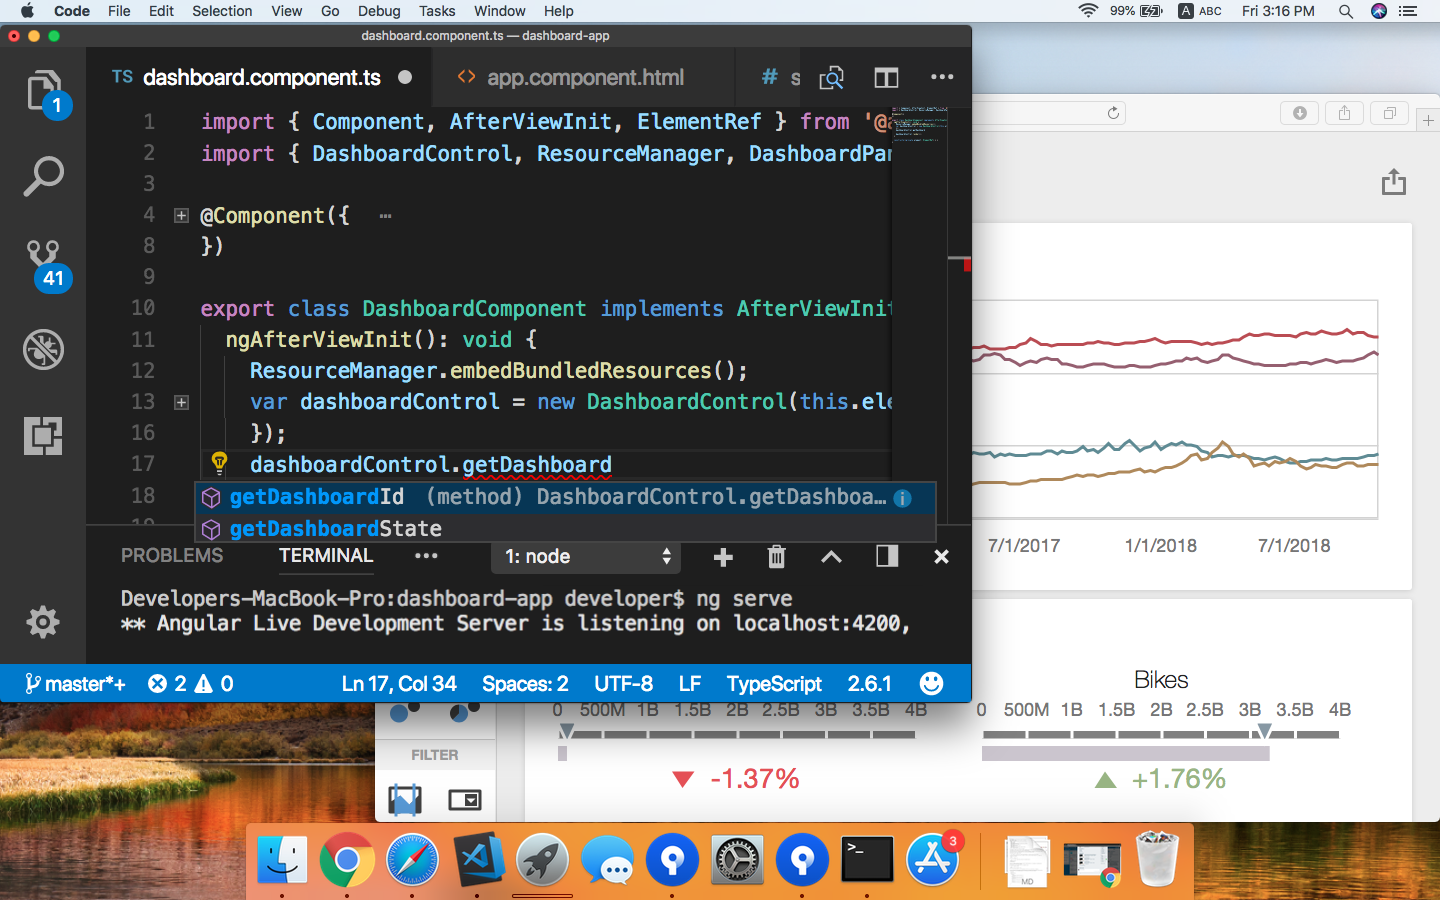 VS Code on a Mac with Code Completion for Dashboards